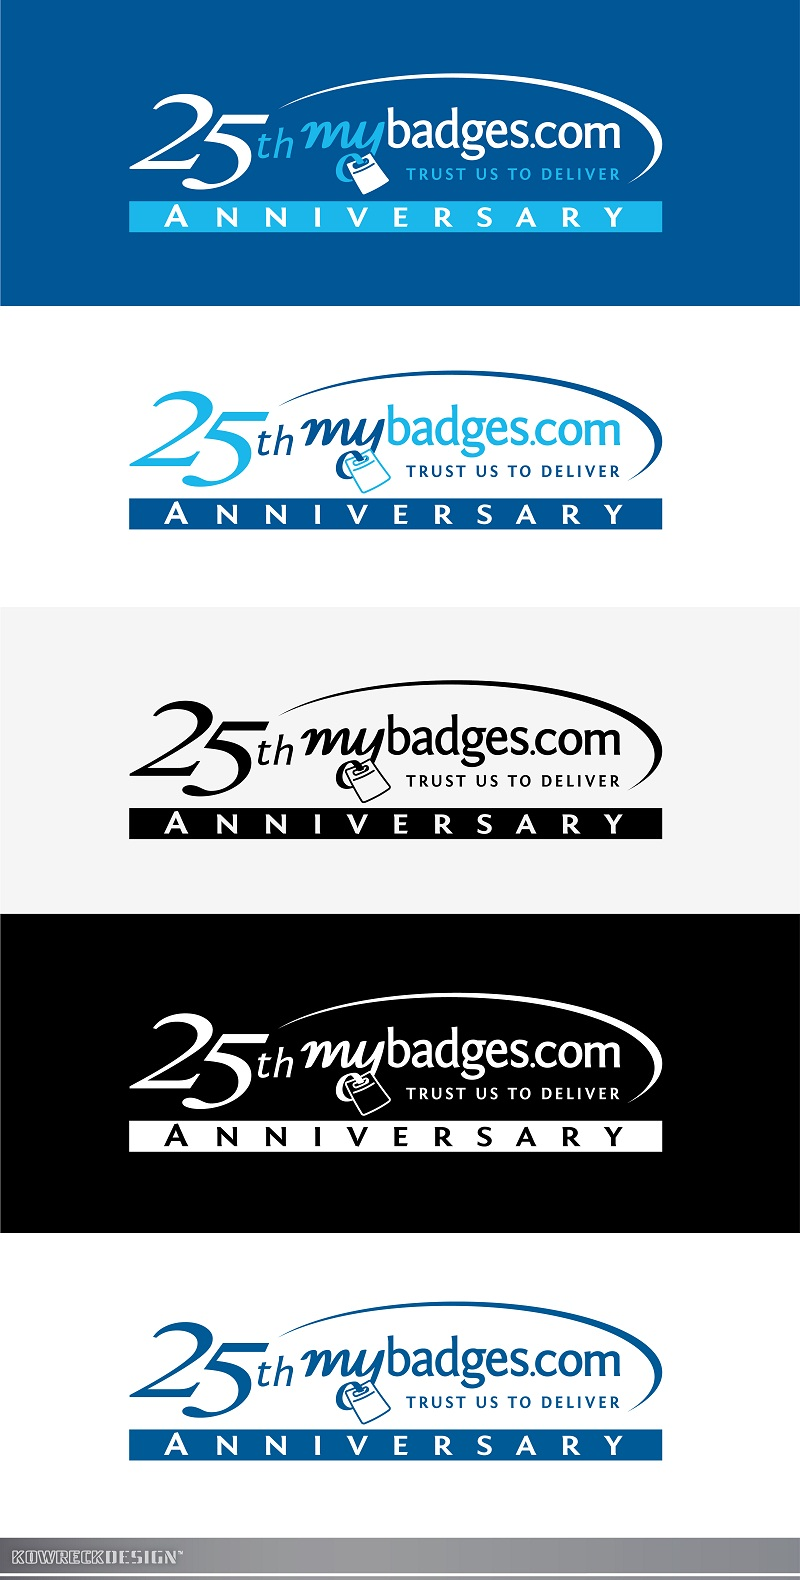 Logo Design by kowreck - Entry No. 144 in the Logo Design Contest 25th Anniversary Logo Design Wanted for MyBadges.com.